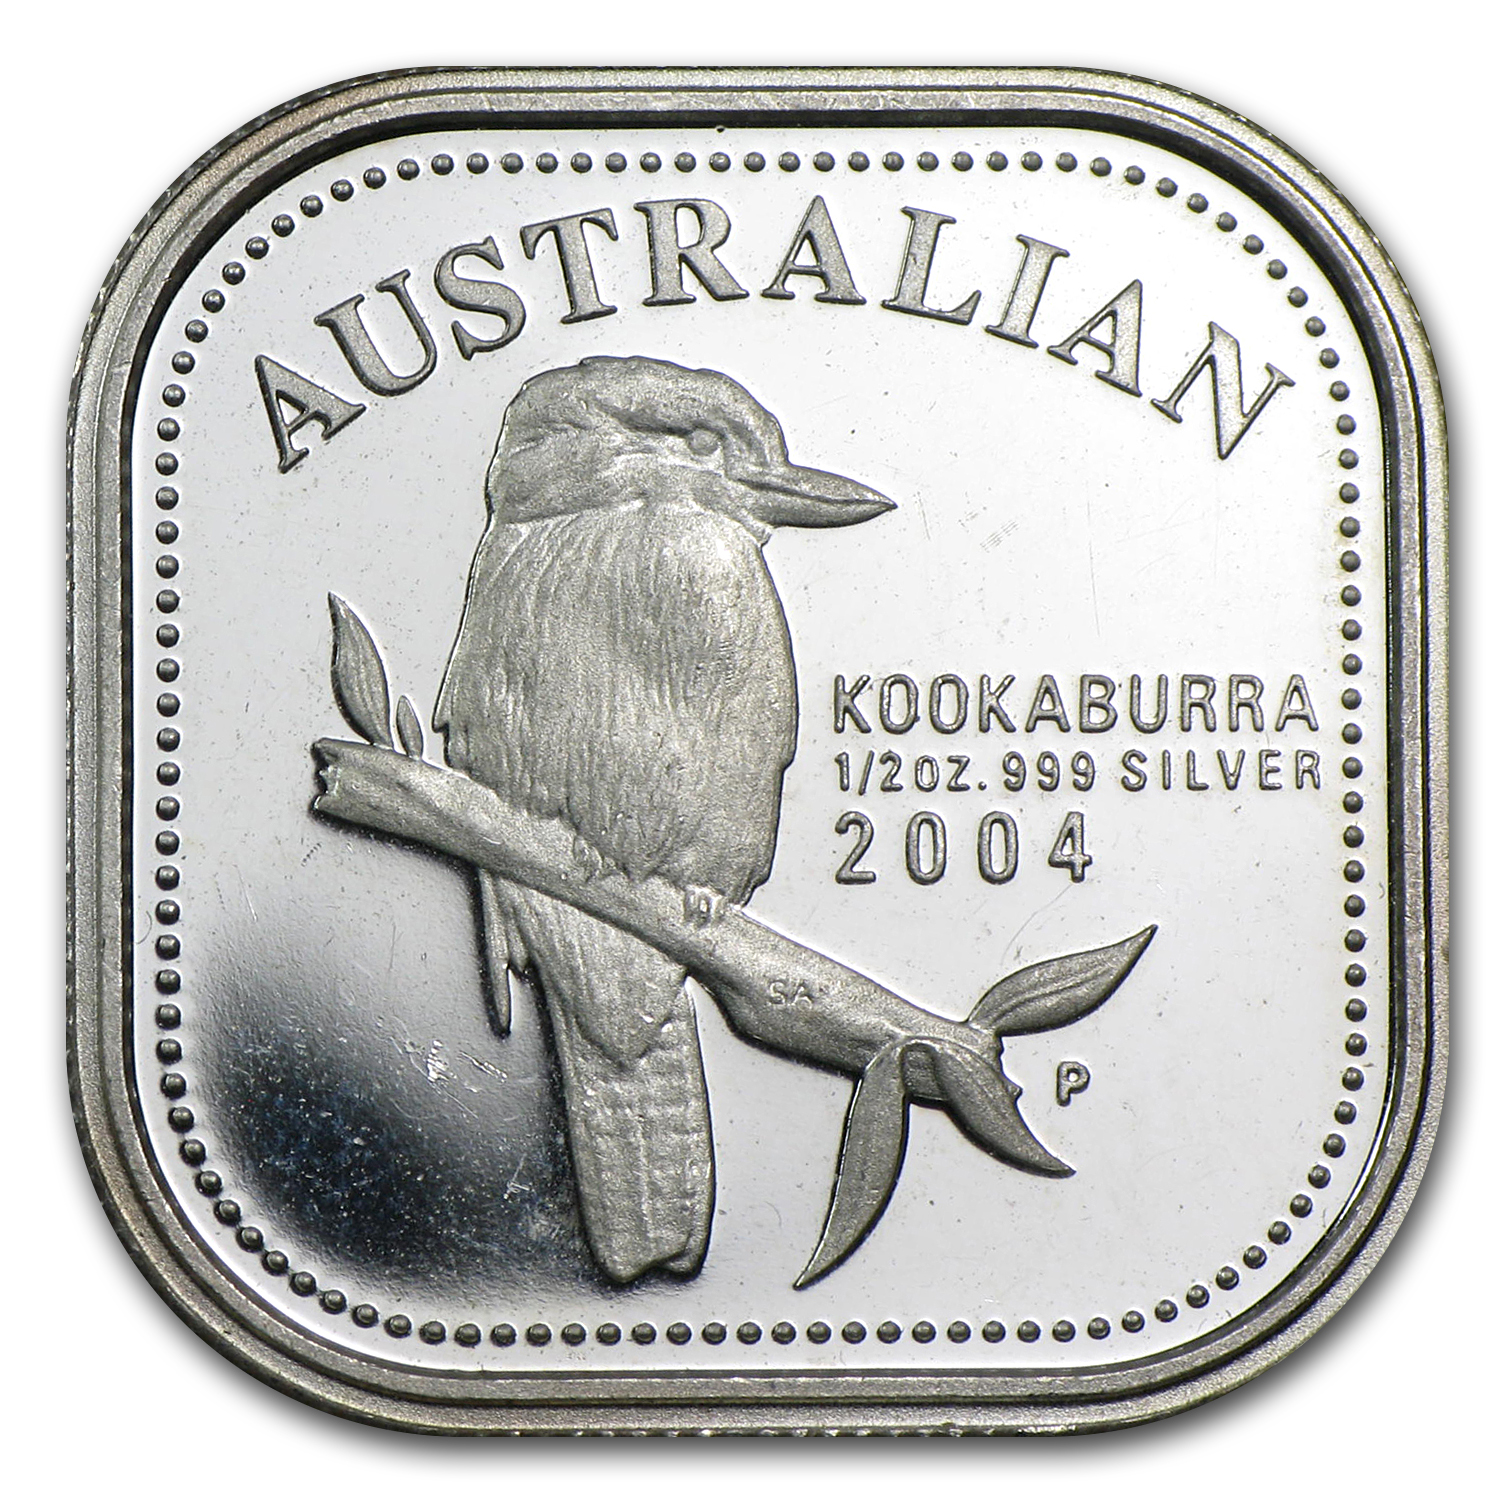 2004 1/2 oz Proof Silver Australian Kookaburra -light abrasions